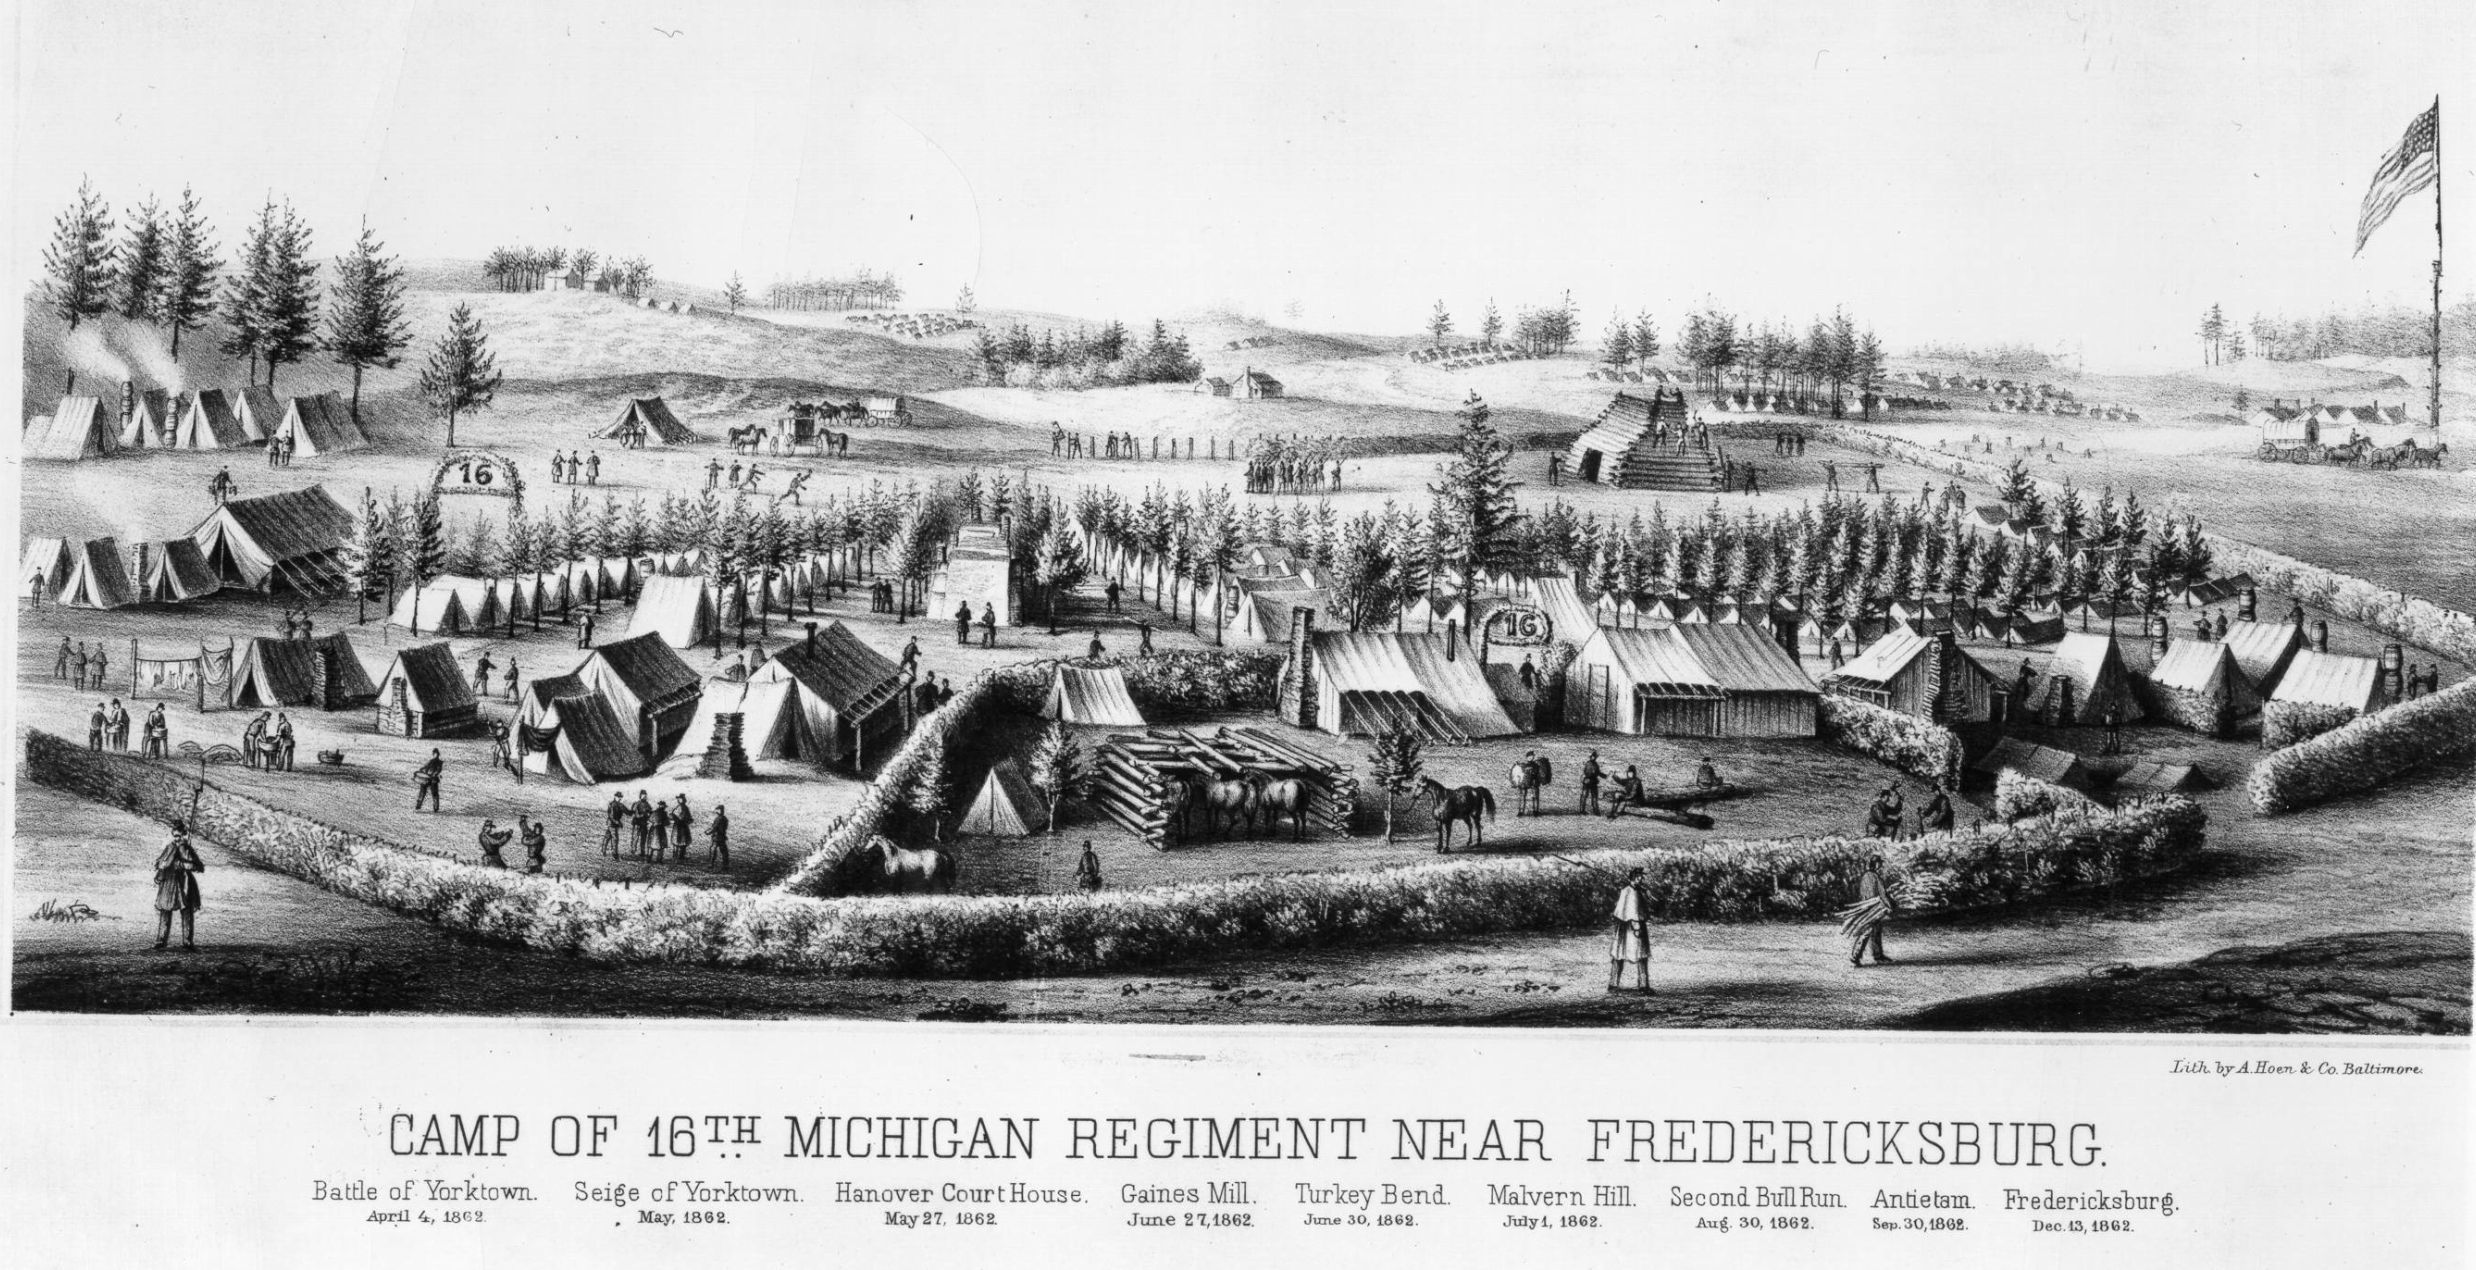 Camp of 16th Michigan near Fredericksburg, 1862